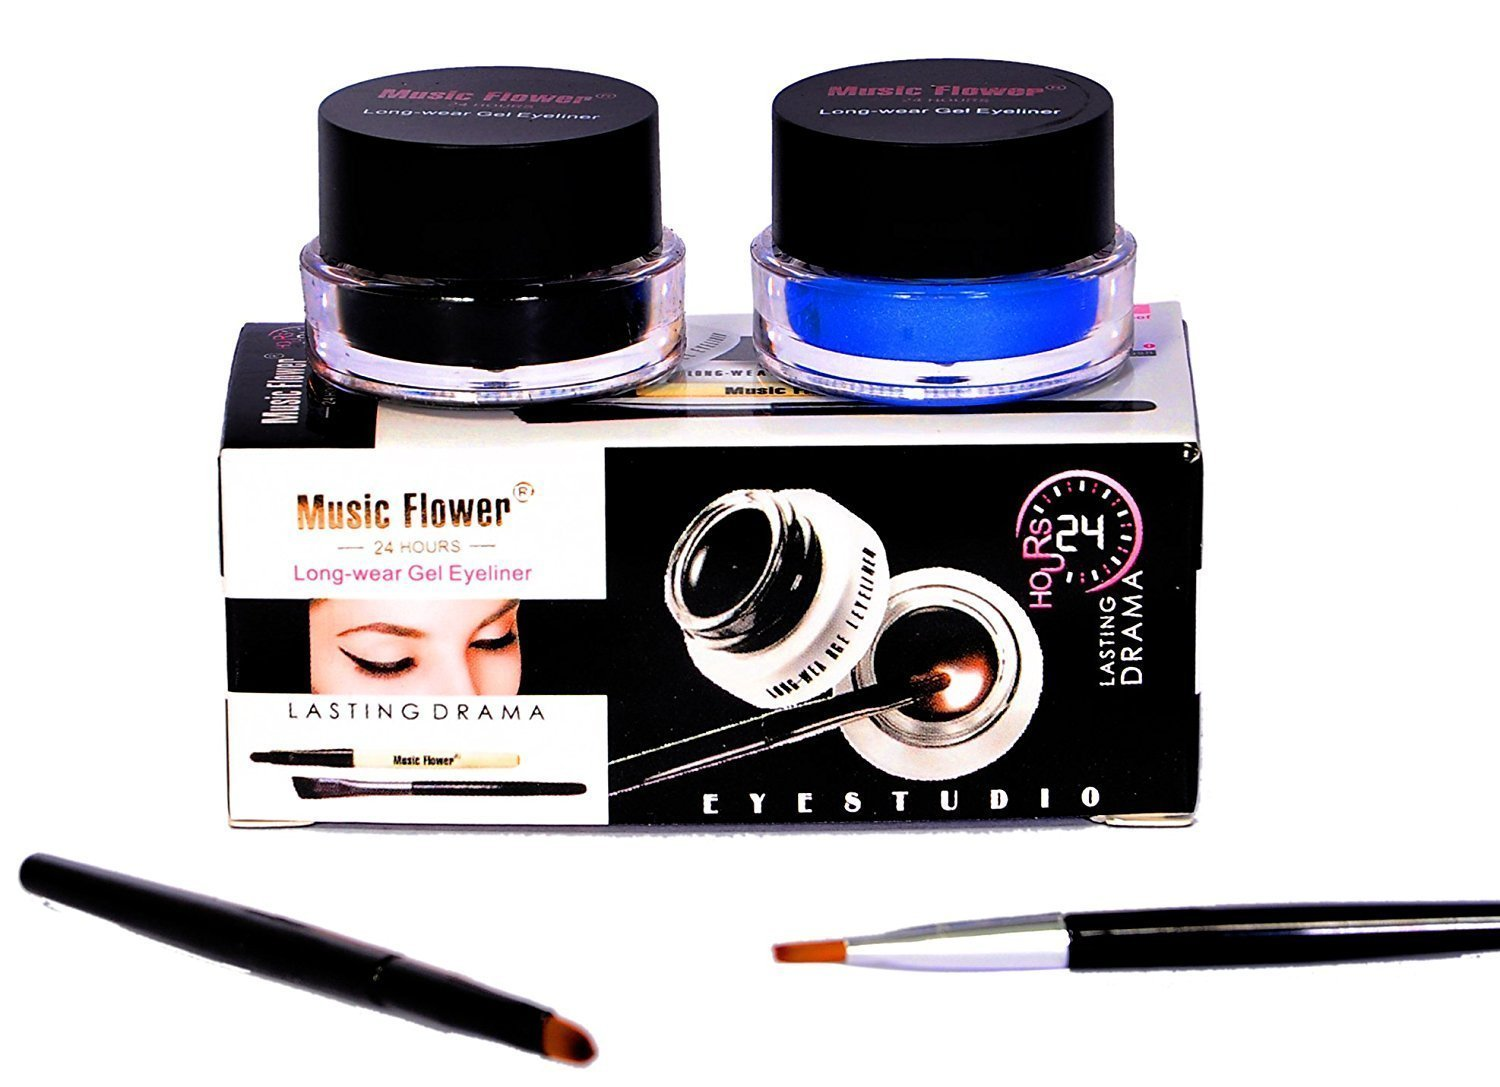 Music Flower Long Wear Gel Eyeliner Smudge Proof & Waterproof (Black And Blue) With 2 Expert Eyeliner Brushes product image